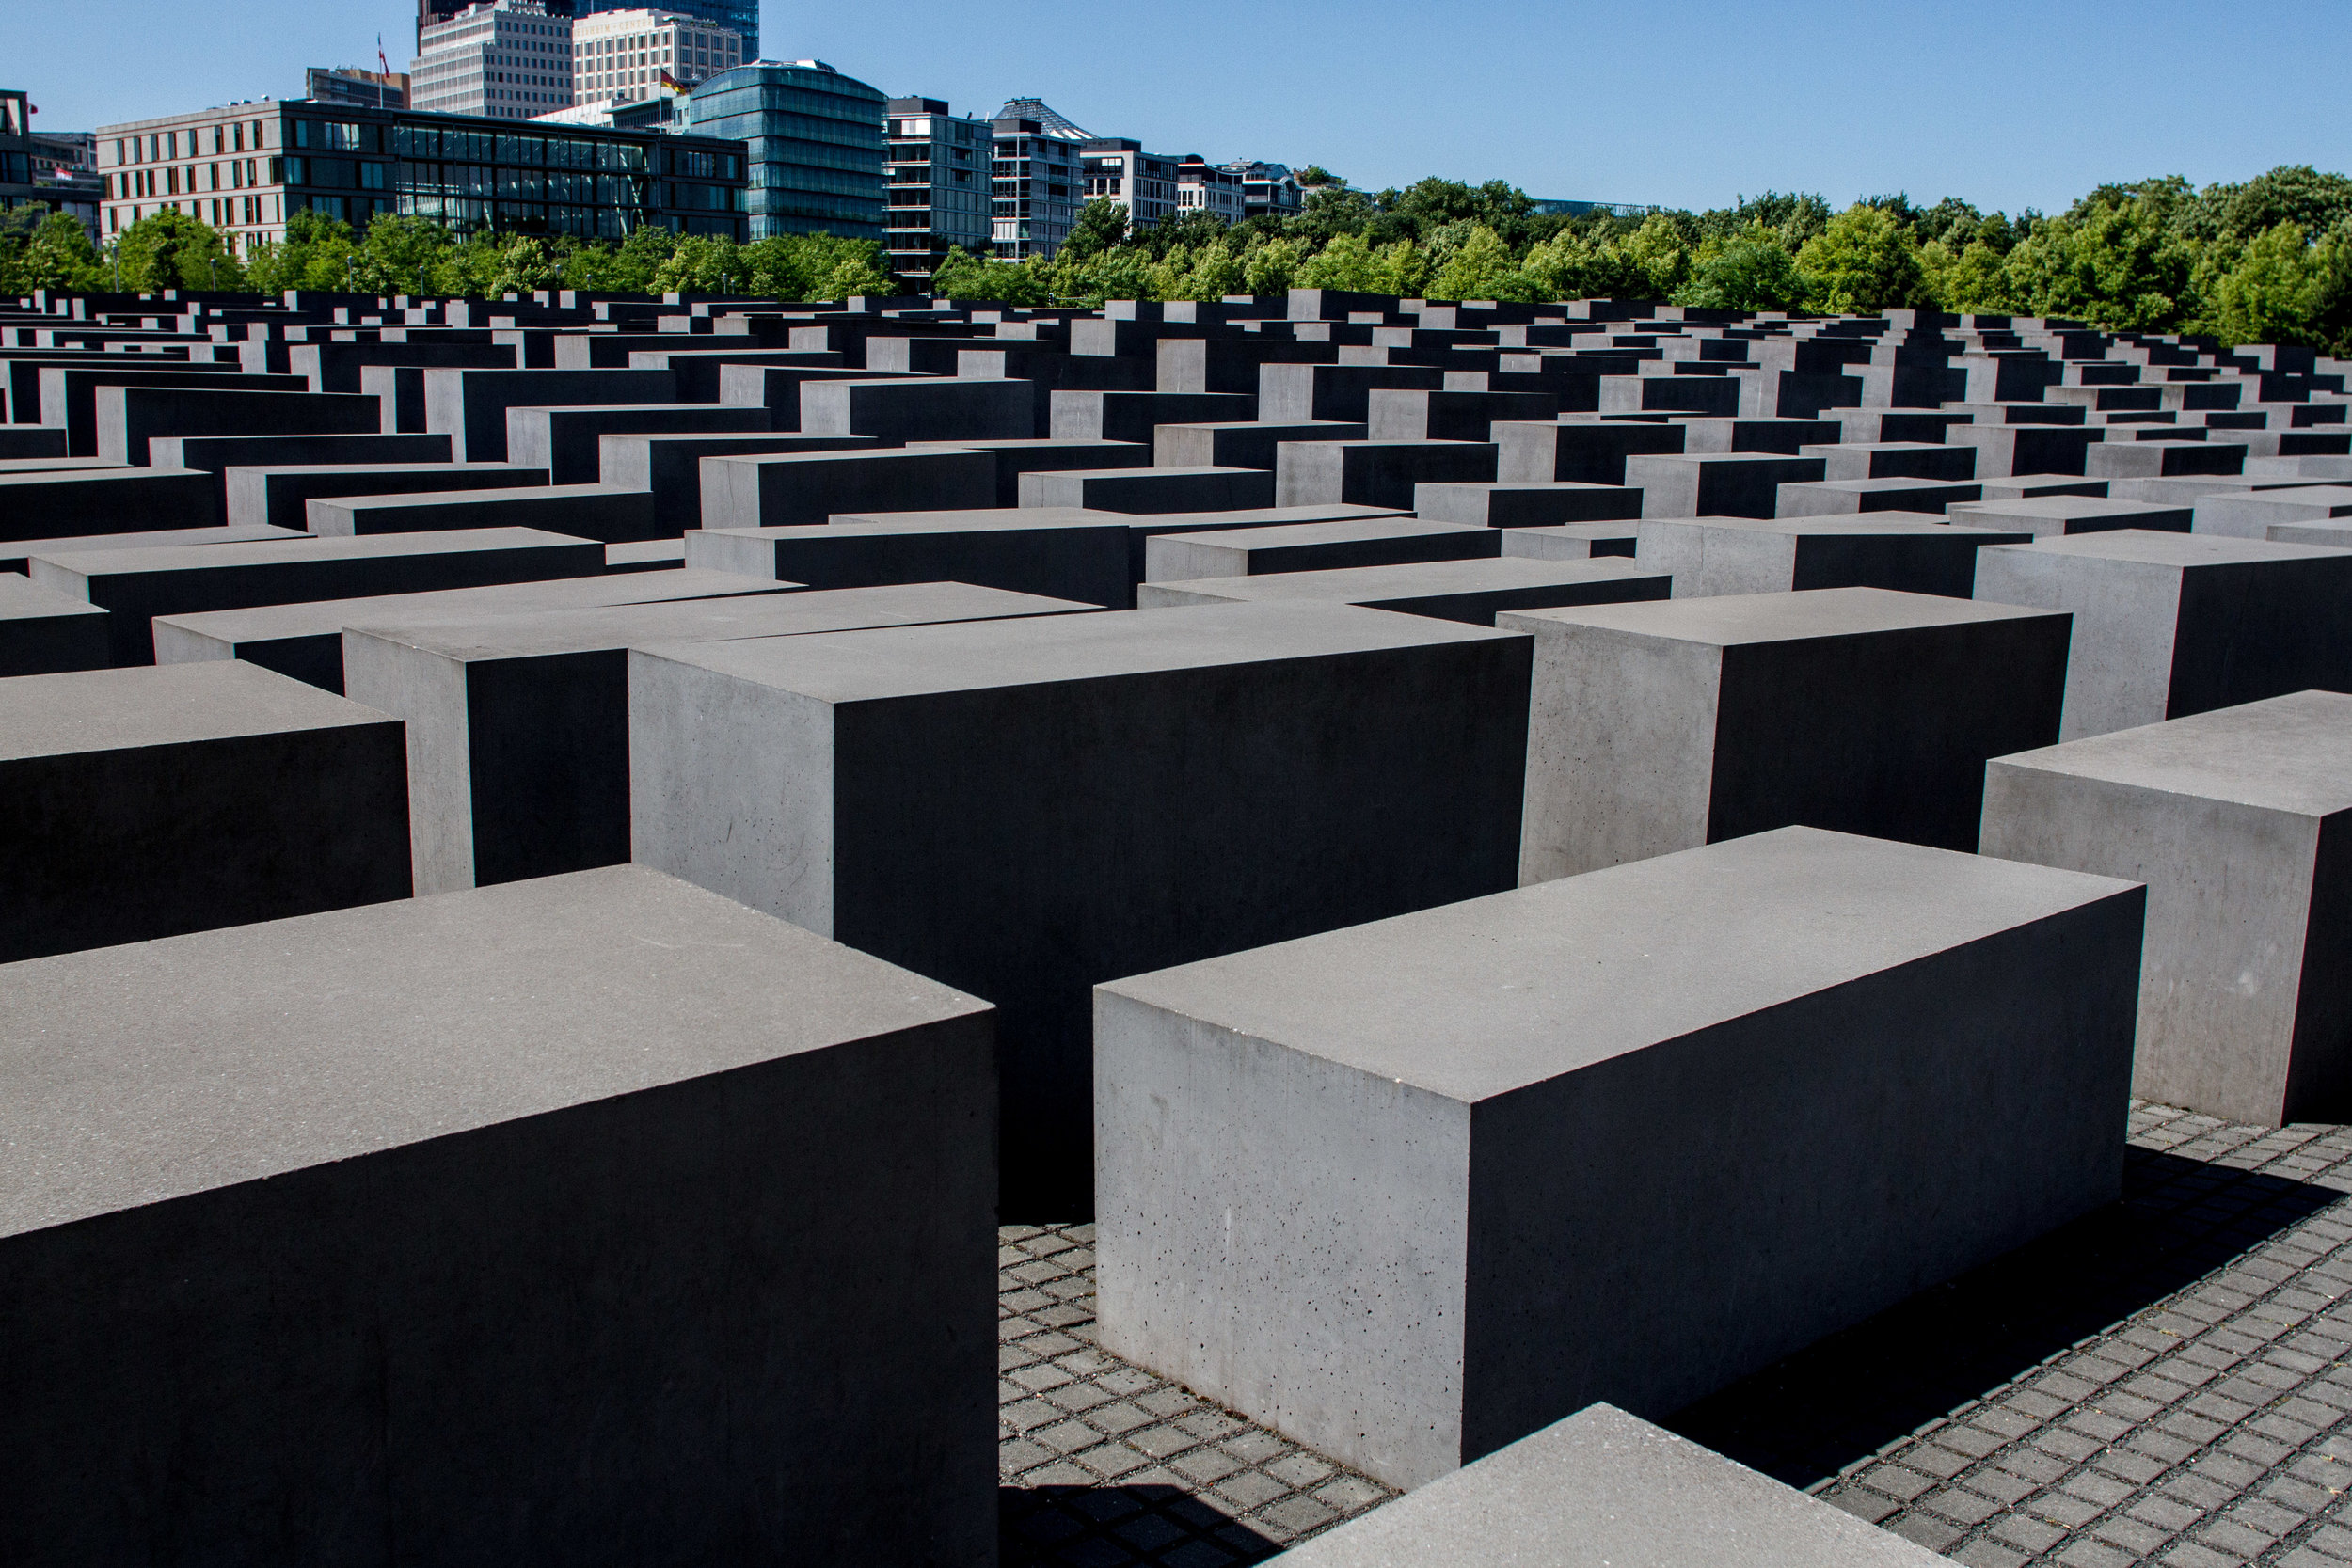 Memorial to the Murdered Jews of Europe in Berlin. Designed by Peter Eisenman, opened May 2005. Image copyright John Dawson